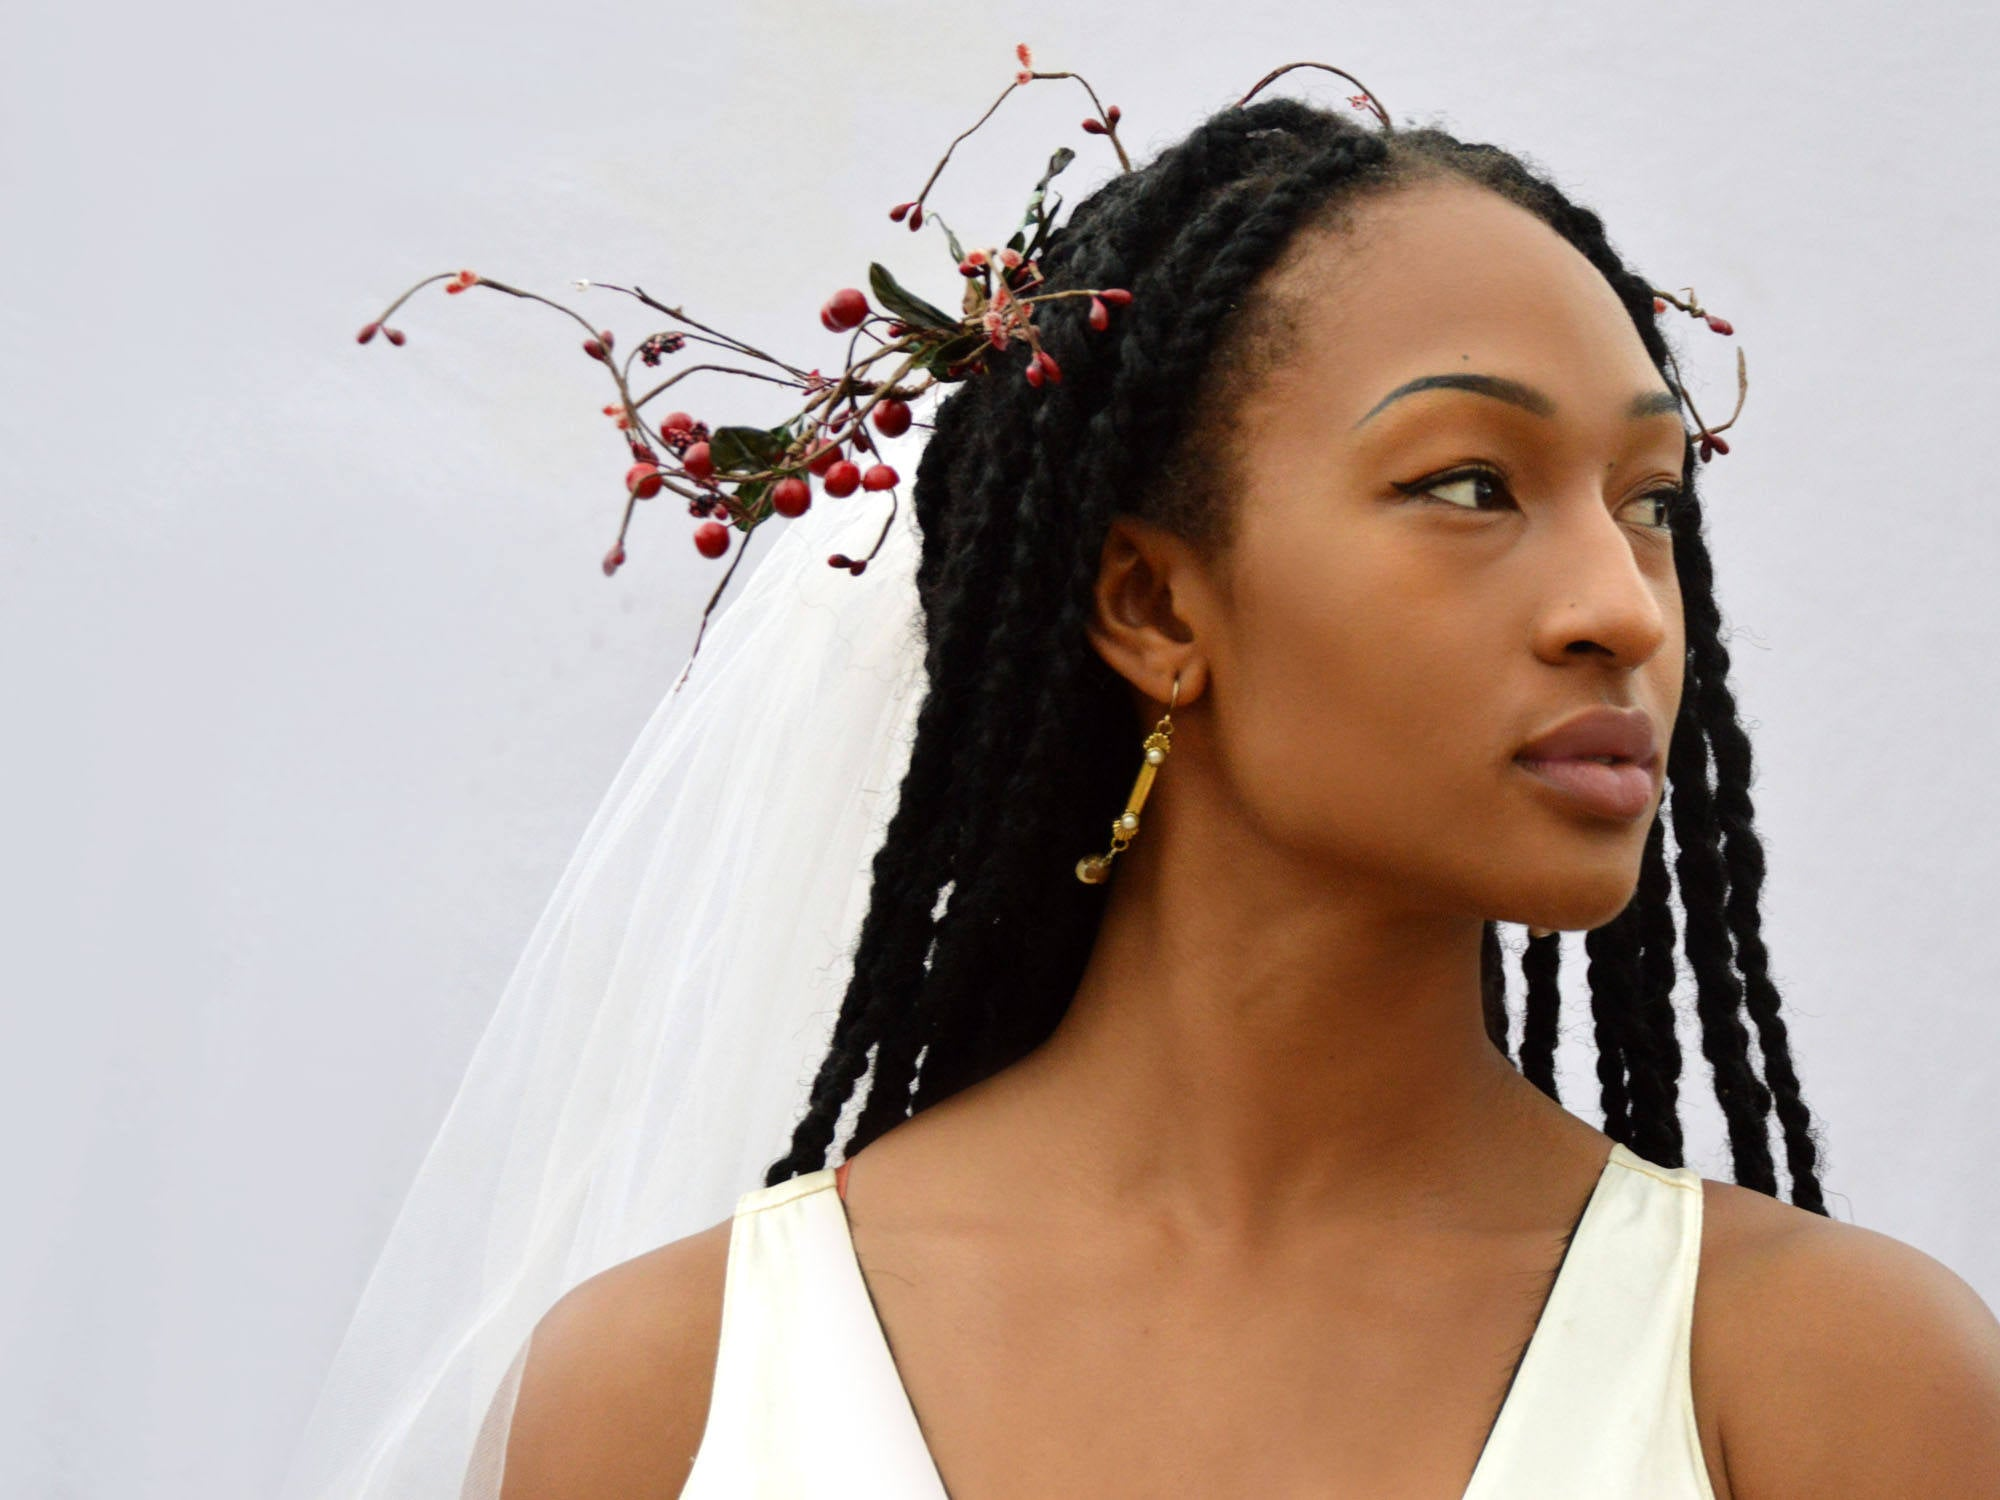 floral crown bridal veil with red berries